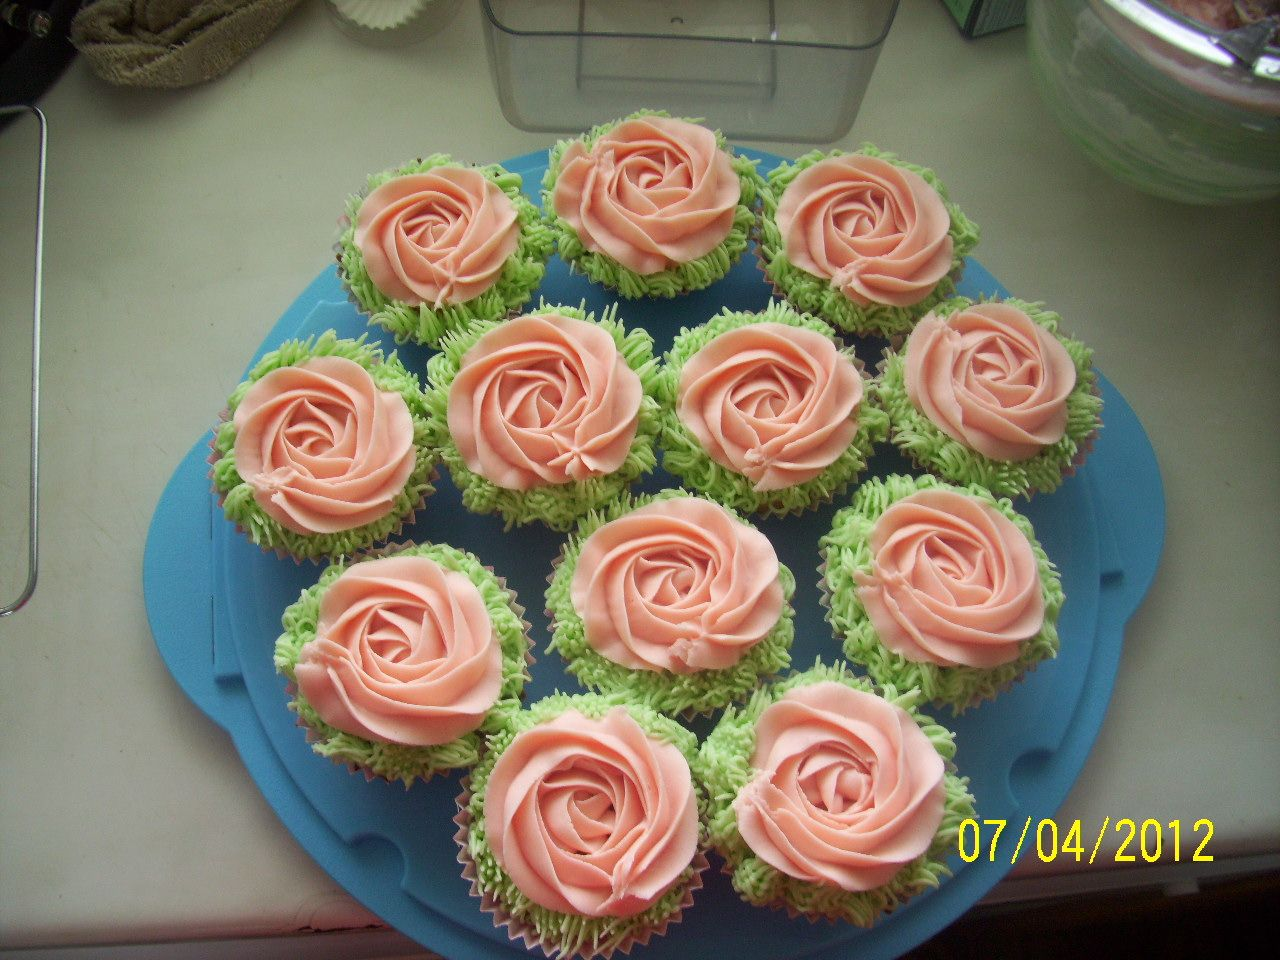 Beautiful cupcakes for the occasion.